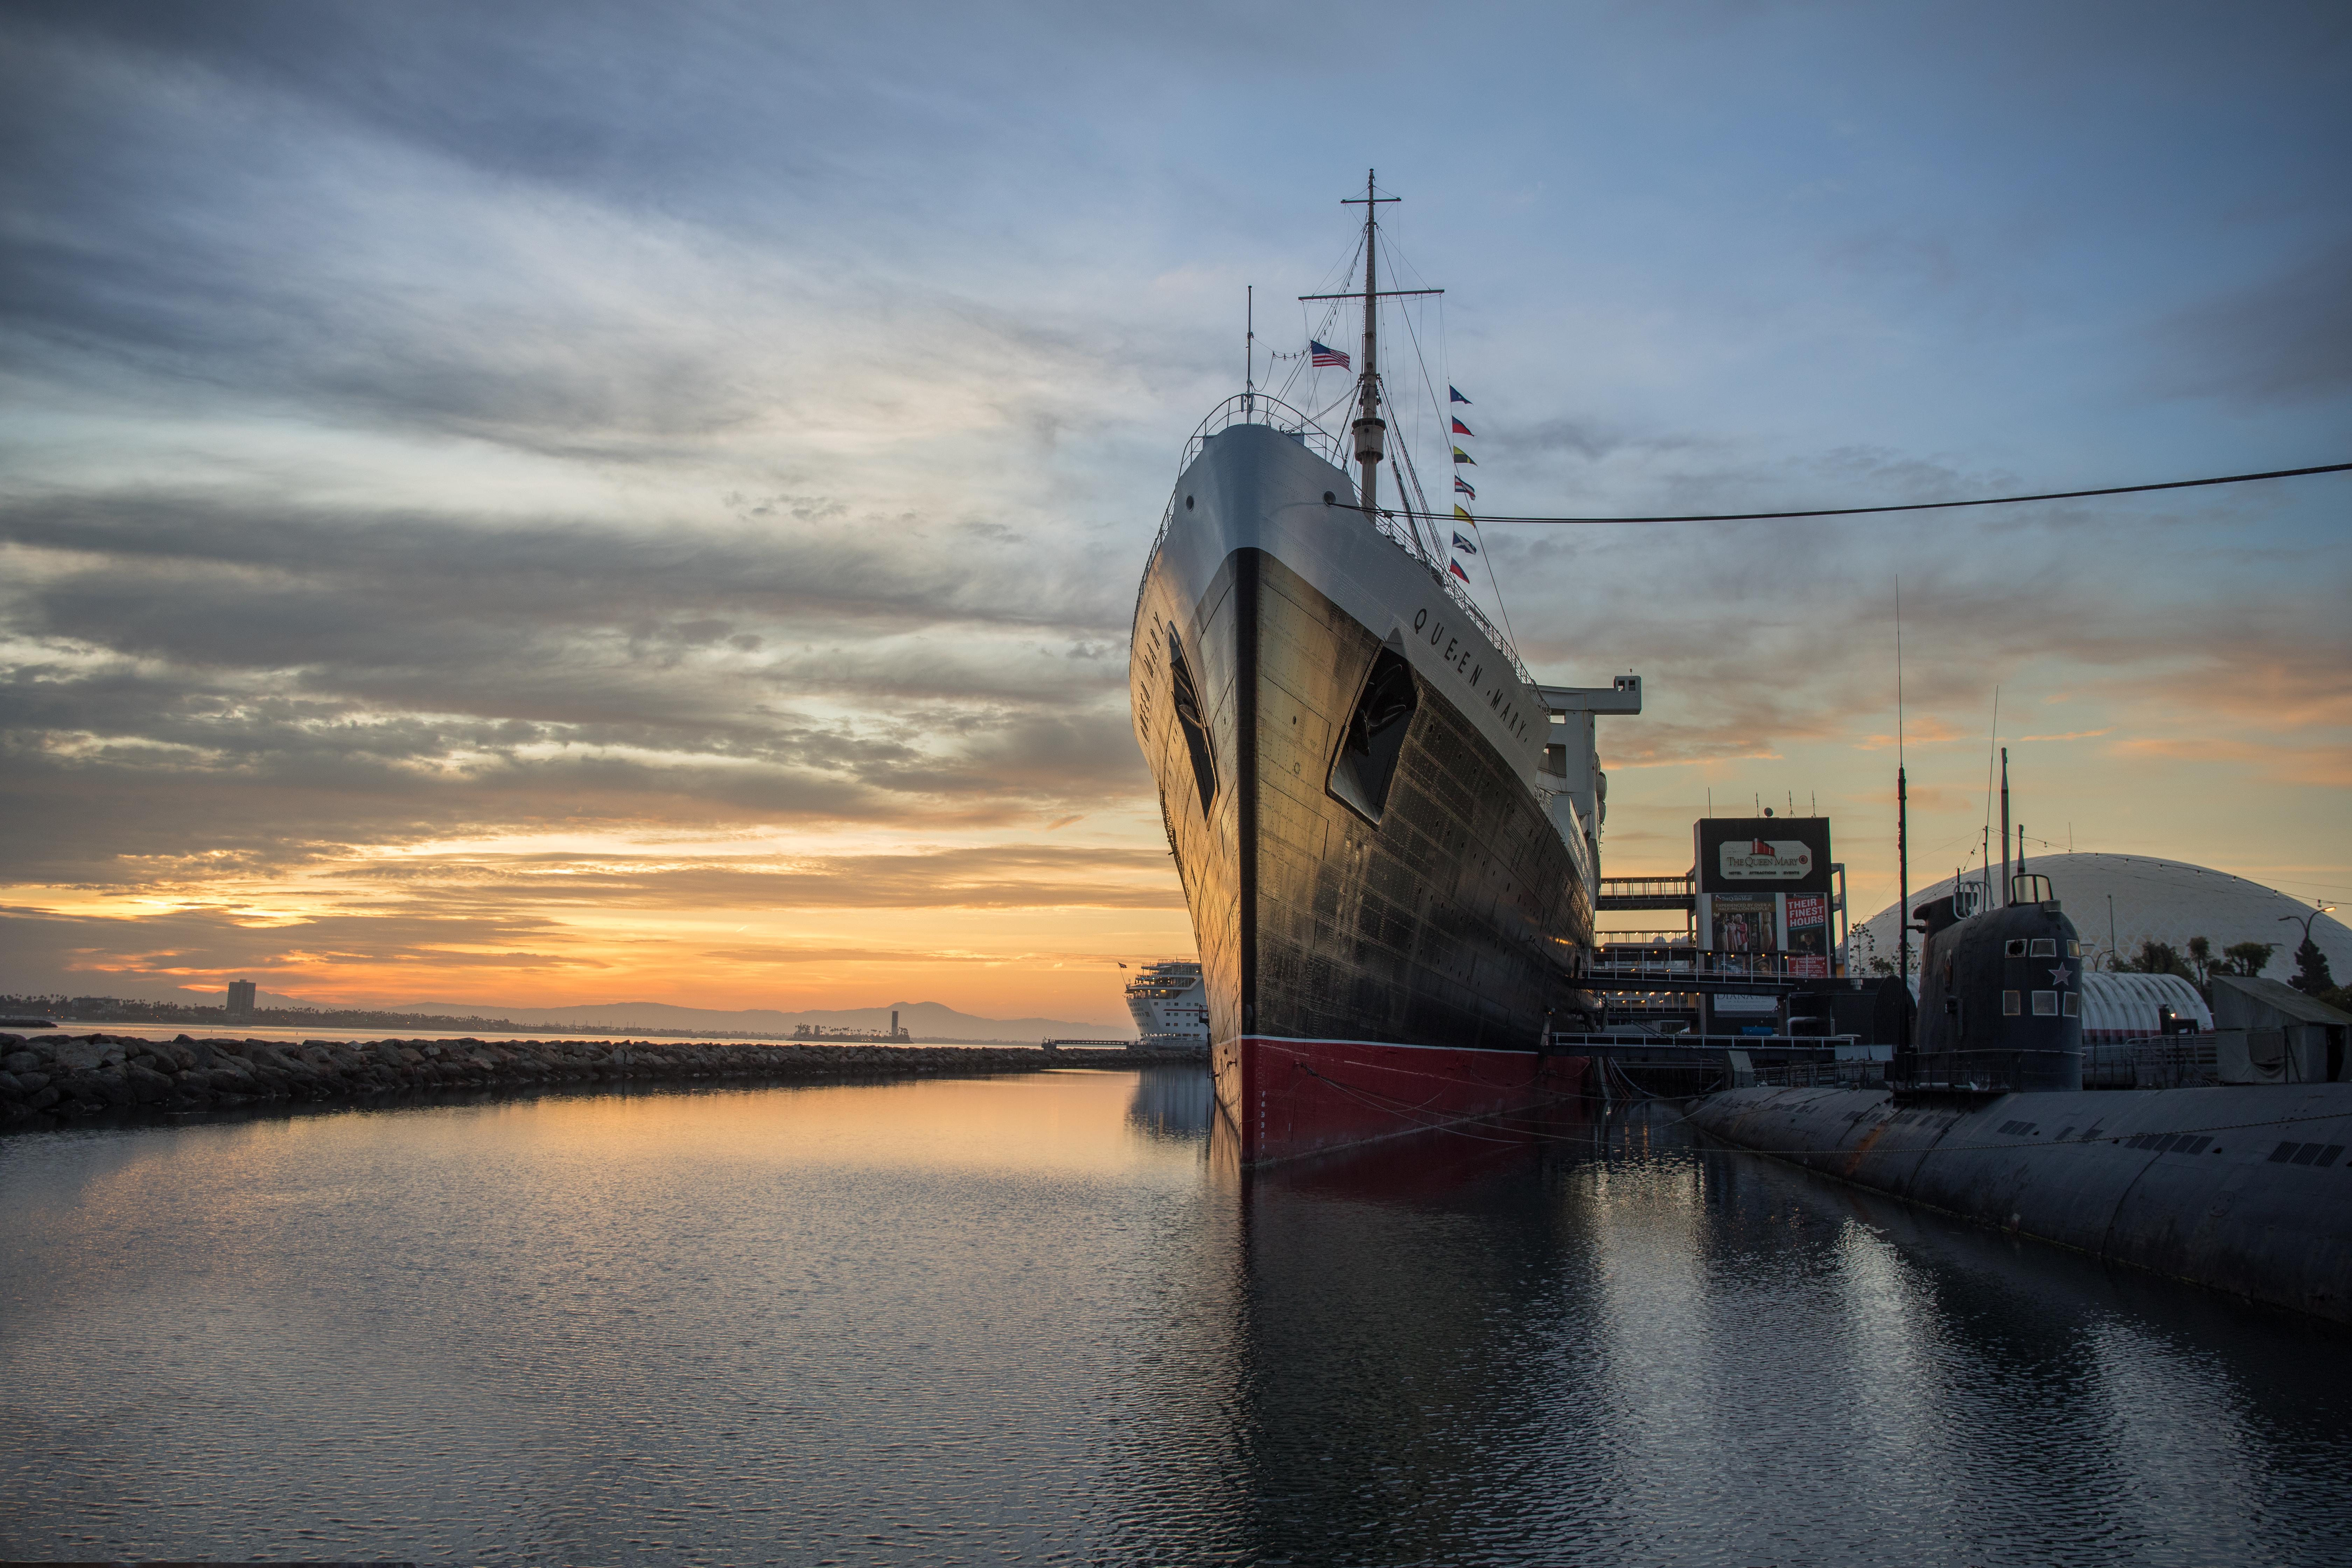 Queen Mary by @tdangphoto